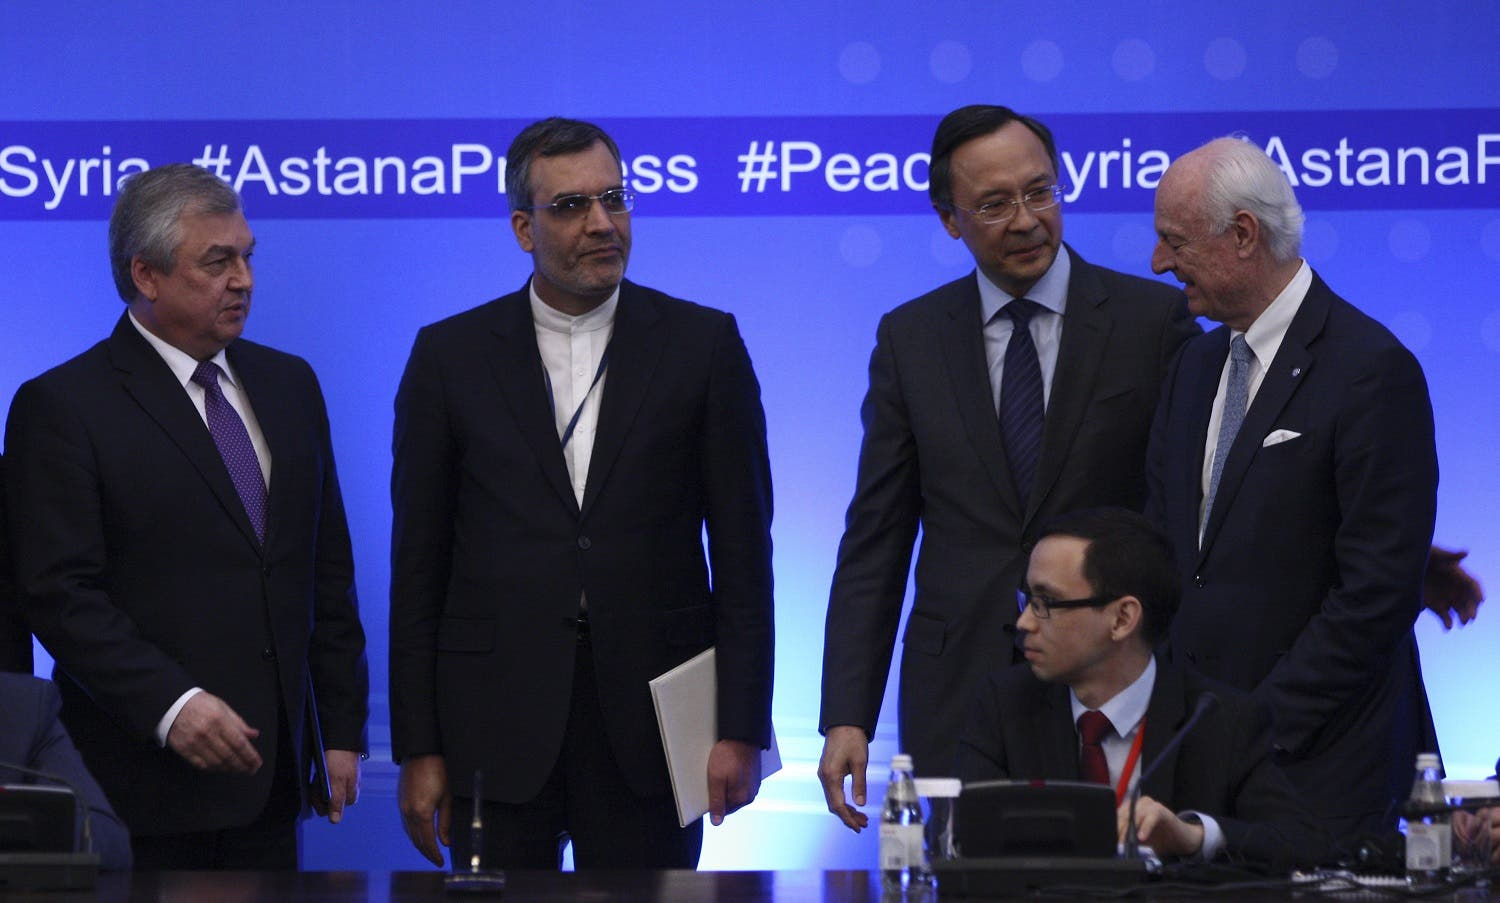 Russian lead negotiator on Syria Alexander Lavrentyev, Iranian Deputy Foreign Minister Hossein Jaberi Ansari, Kazakh Foreign Minister Kairat Abdrakhmanov and U.N. Special Envoy for Syria Staffan de Mistura attend the fourth round of Syria peace talks in Astana, Kazakhstan, May 4, 2017. REUTERS/Mukhtar Kholdorbekov